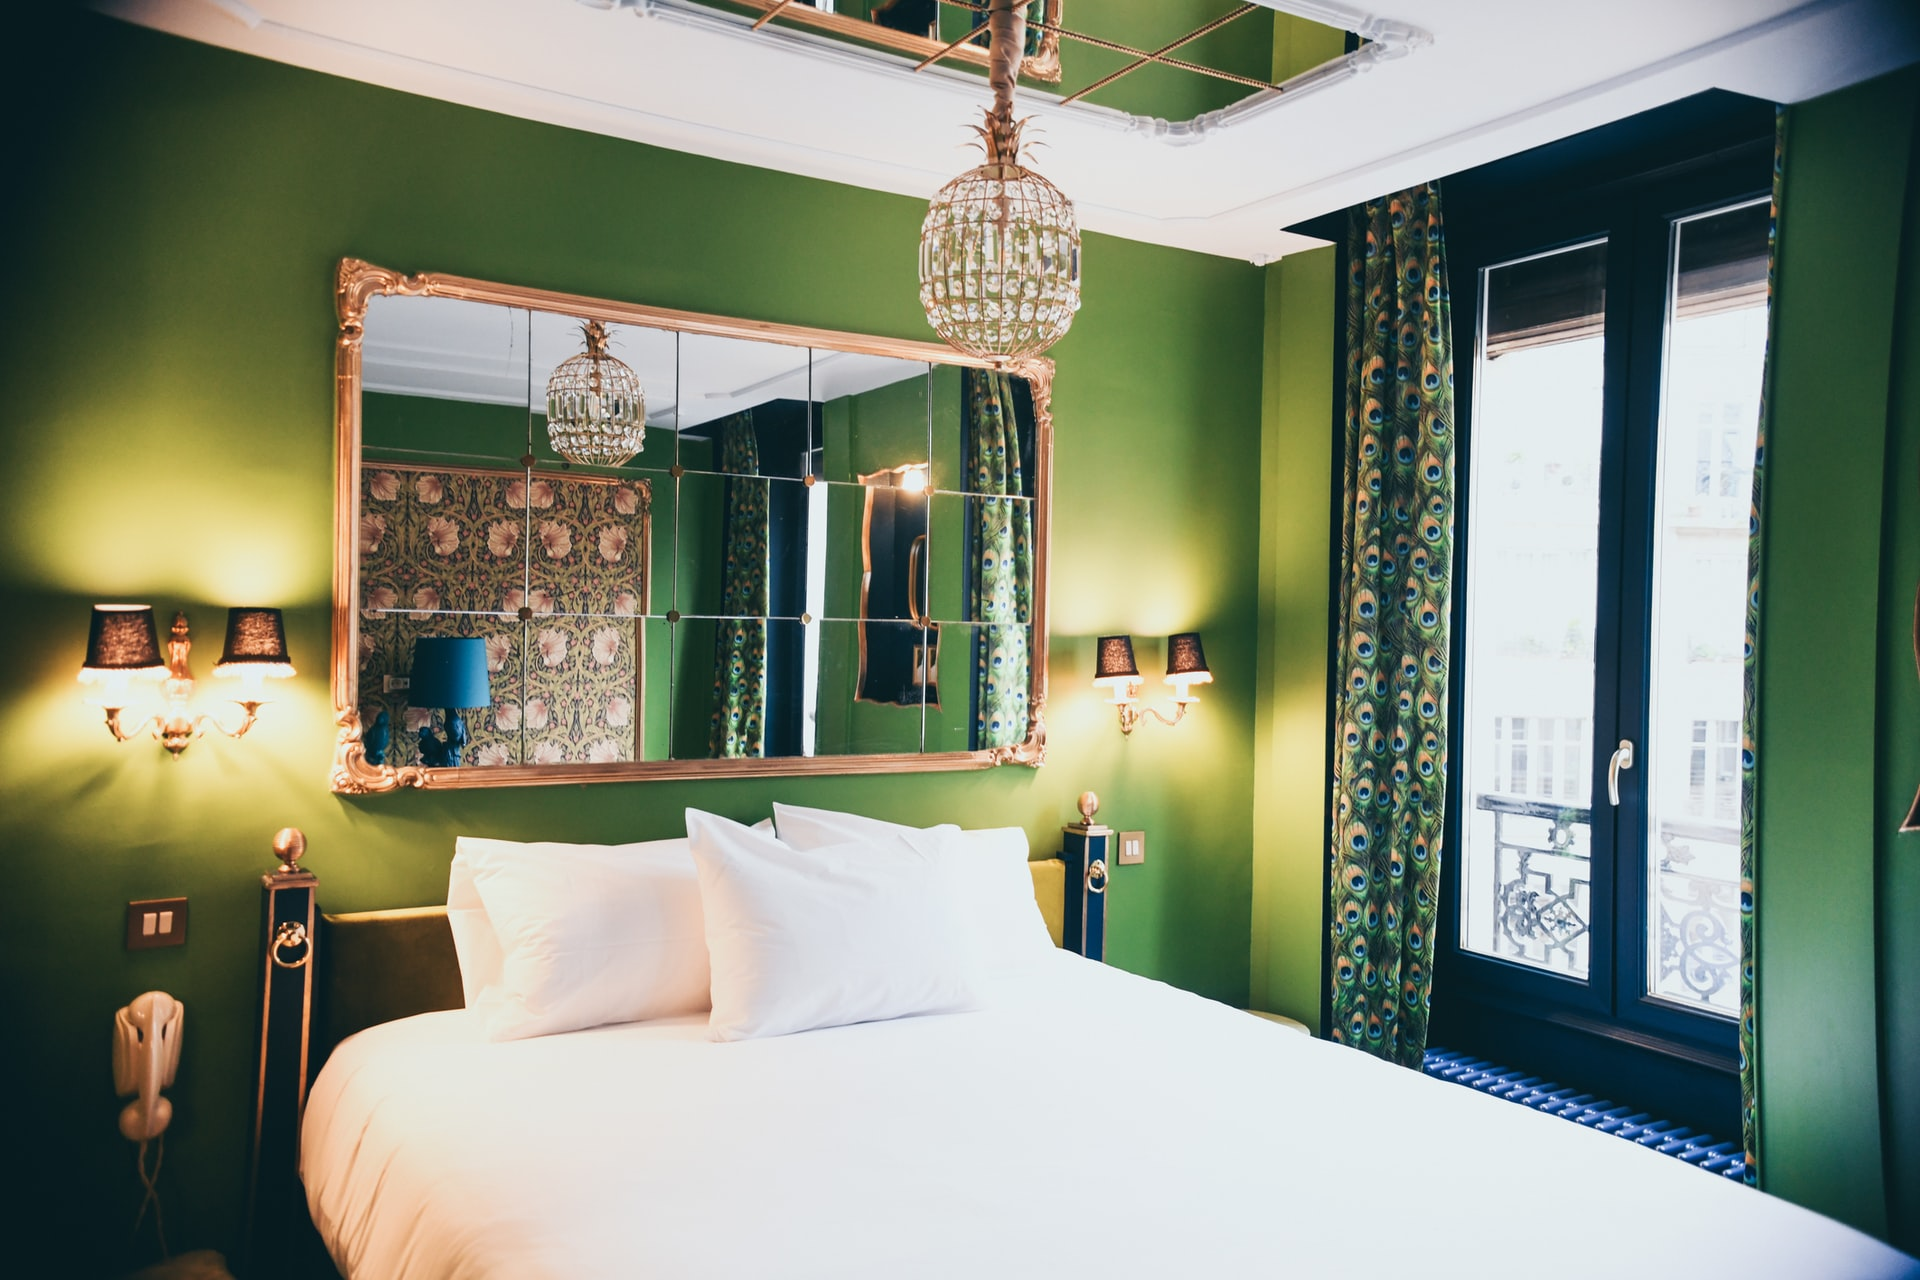 how to pick bedroom lighting: Green Bedroom with Crystal pendant and a pair or sconces.